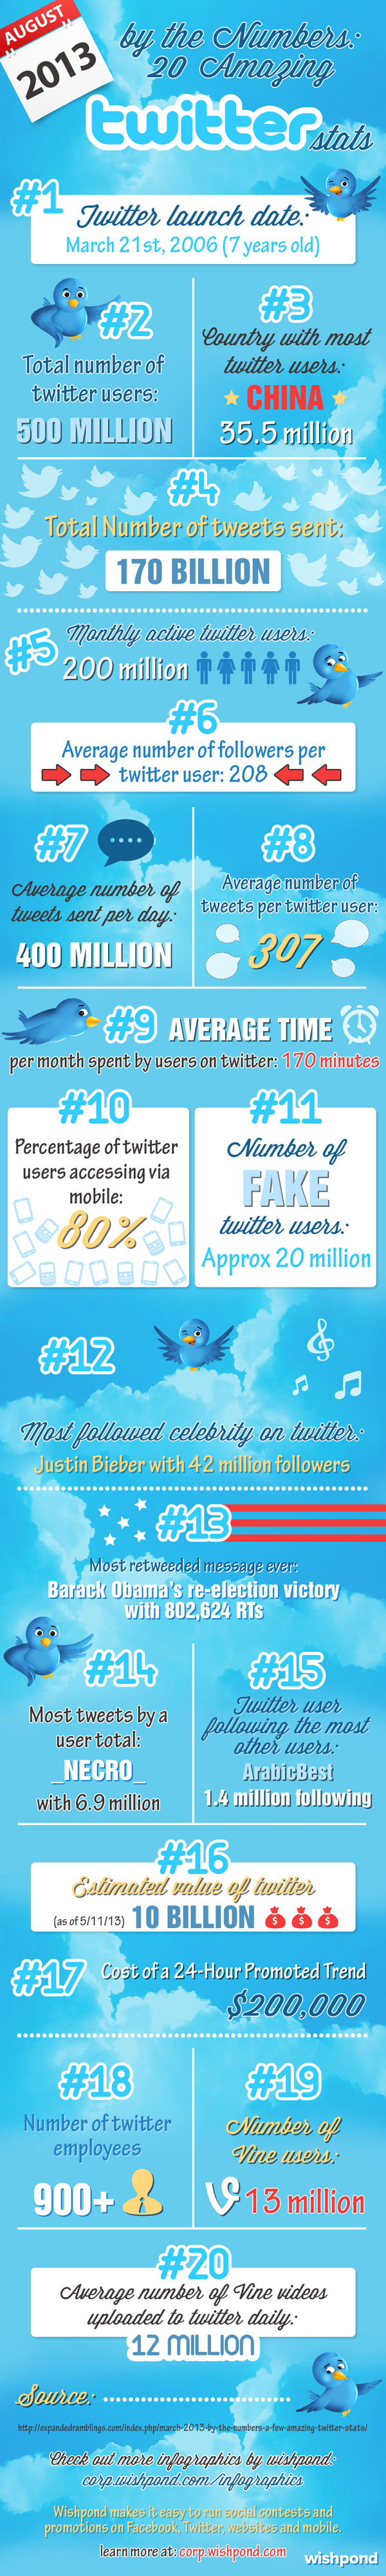 Infographic_Twitter_Stats-1